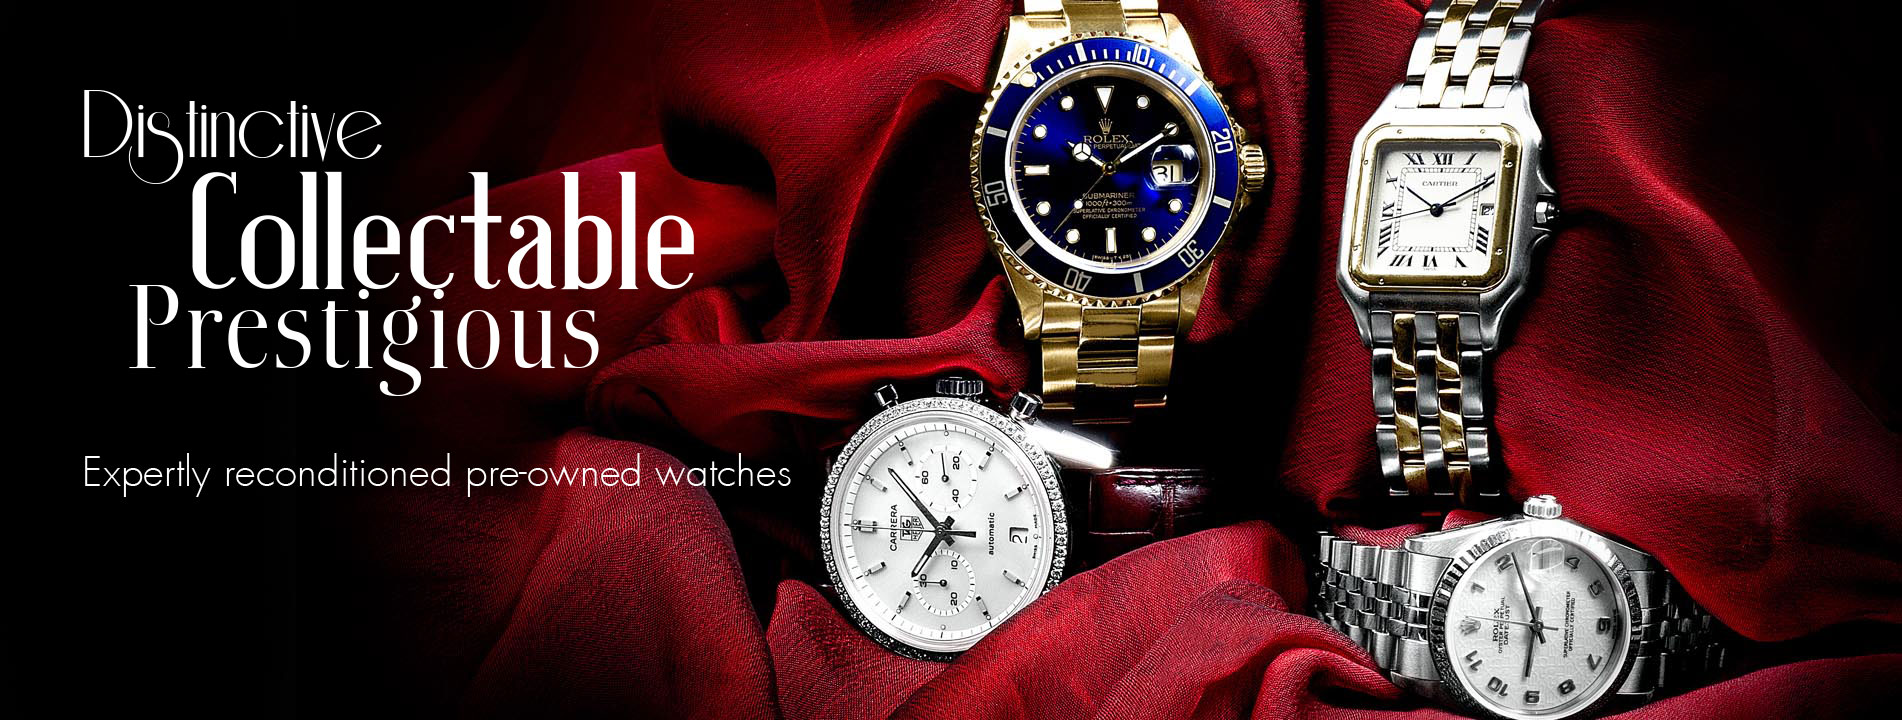 Distinctive Collectable Prestigious, Expertly reconditioned Pre-owned watches